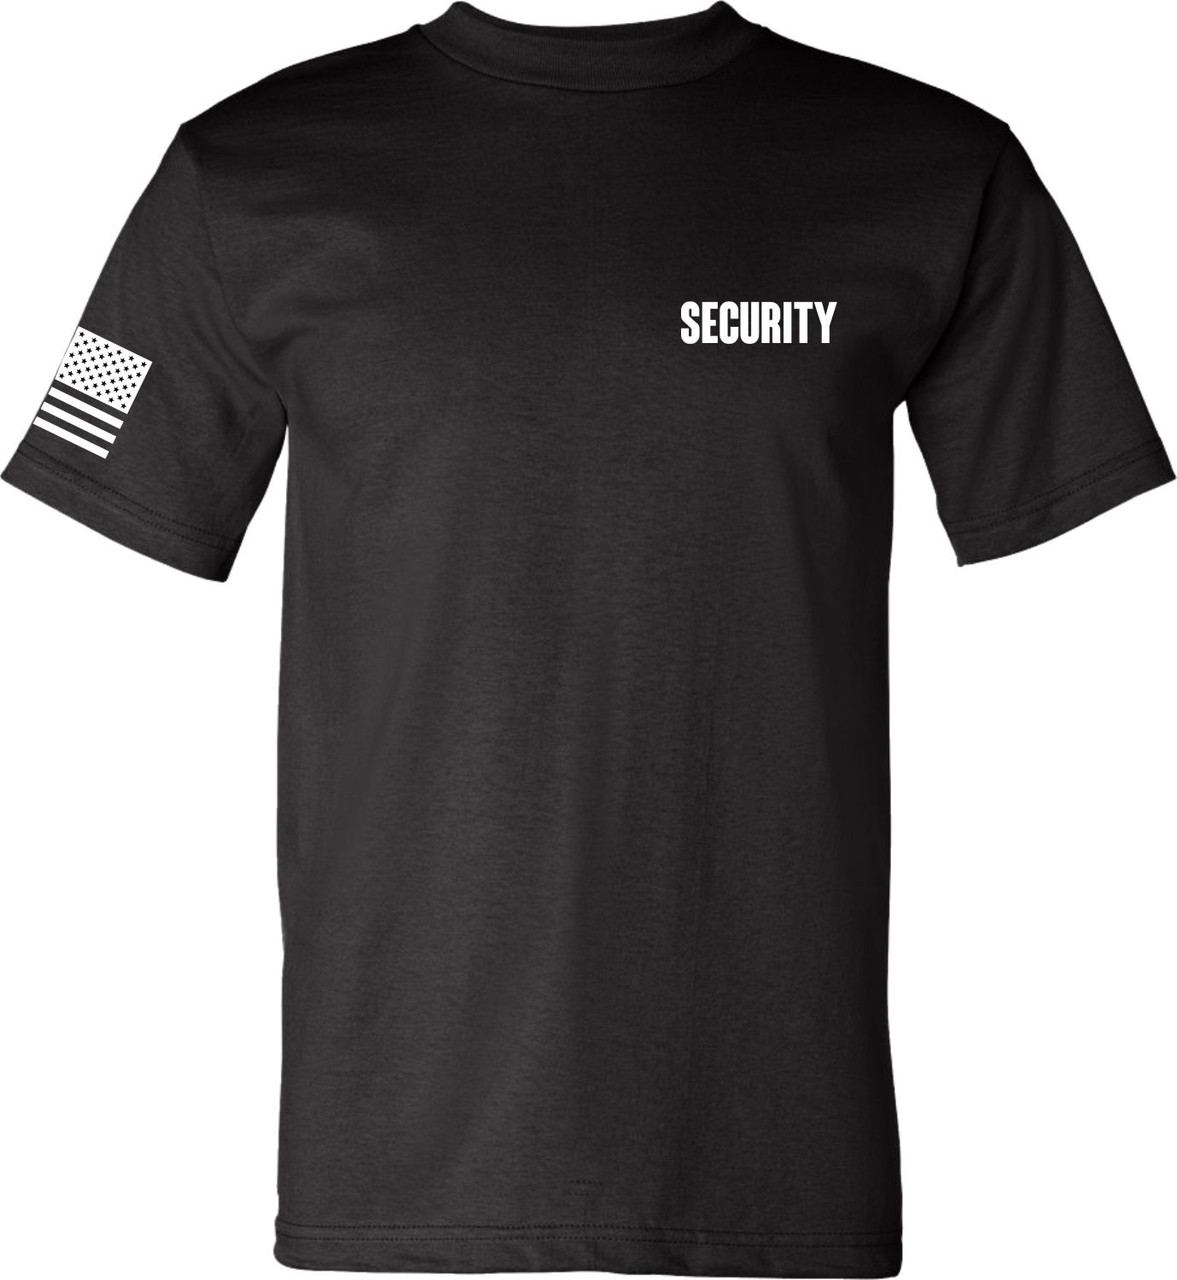 Made in the USA Black Security T Shirt with American Flag on Right Arm